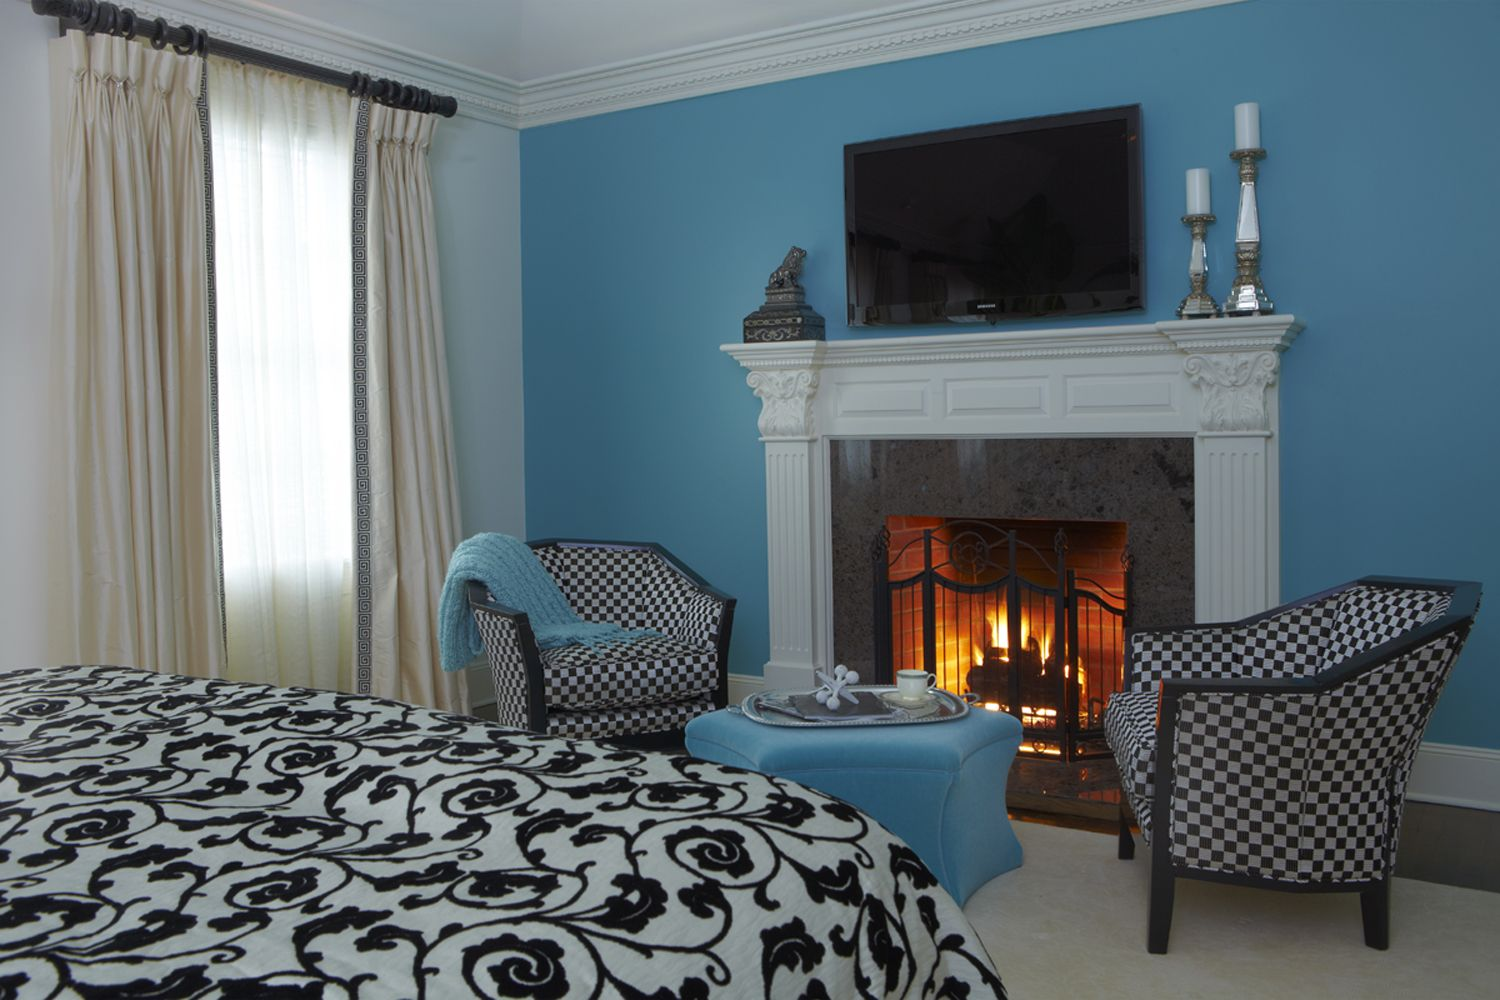 Bedroom Fireplace Design Decorating Classic Fireplaces For Modern Bedroom With Blue Wall